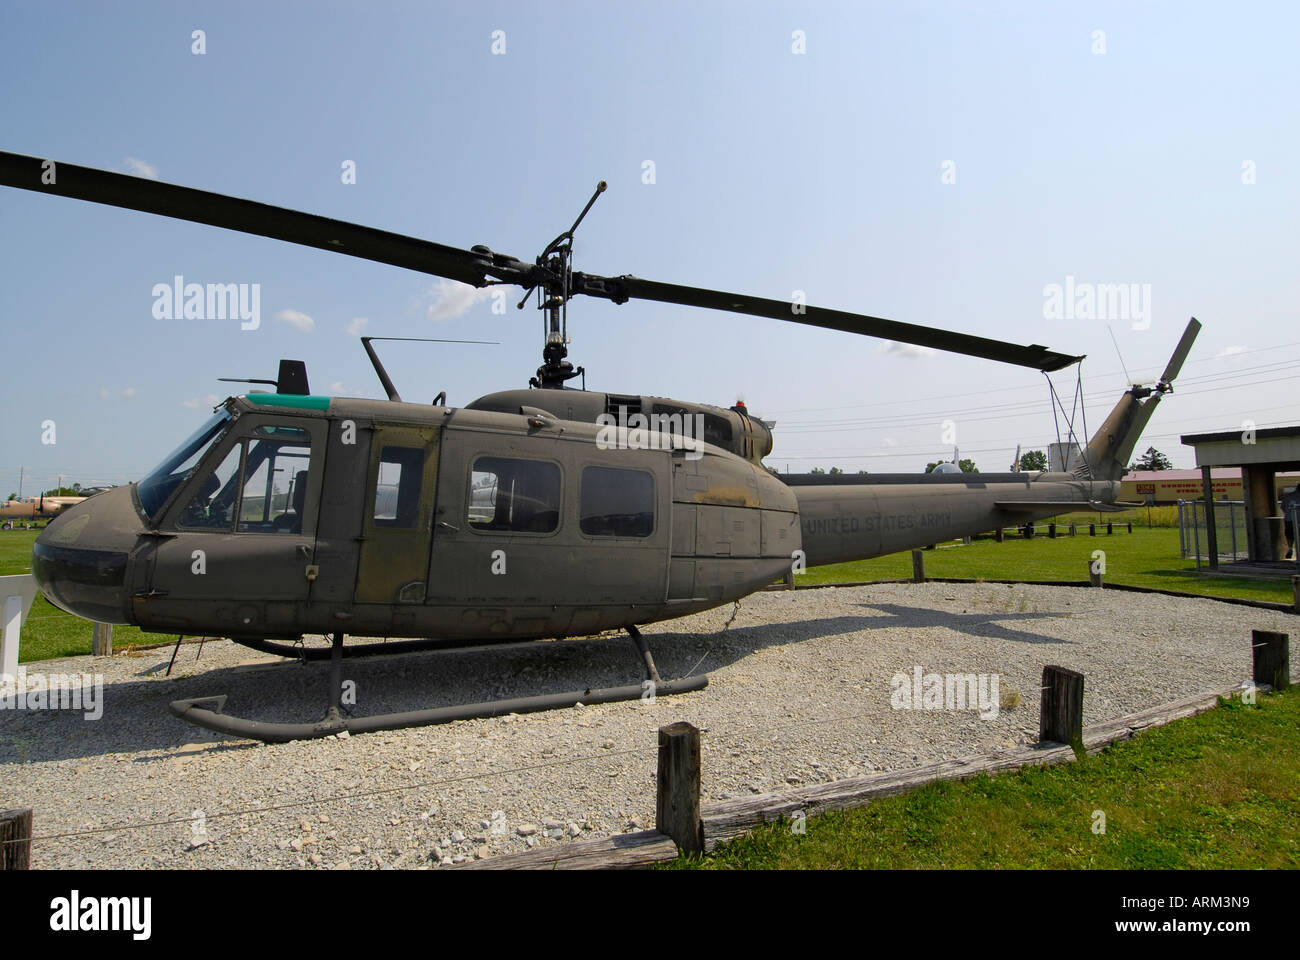 Huey Helicopter For Sale >> Bell UH 1H Huey helicopter at the Grissom Air Museum outside of Stock Photo: 9190040 - Alamy